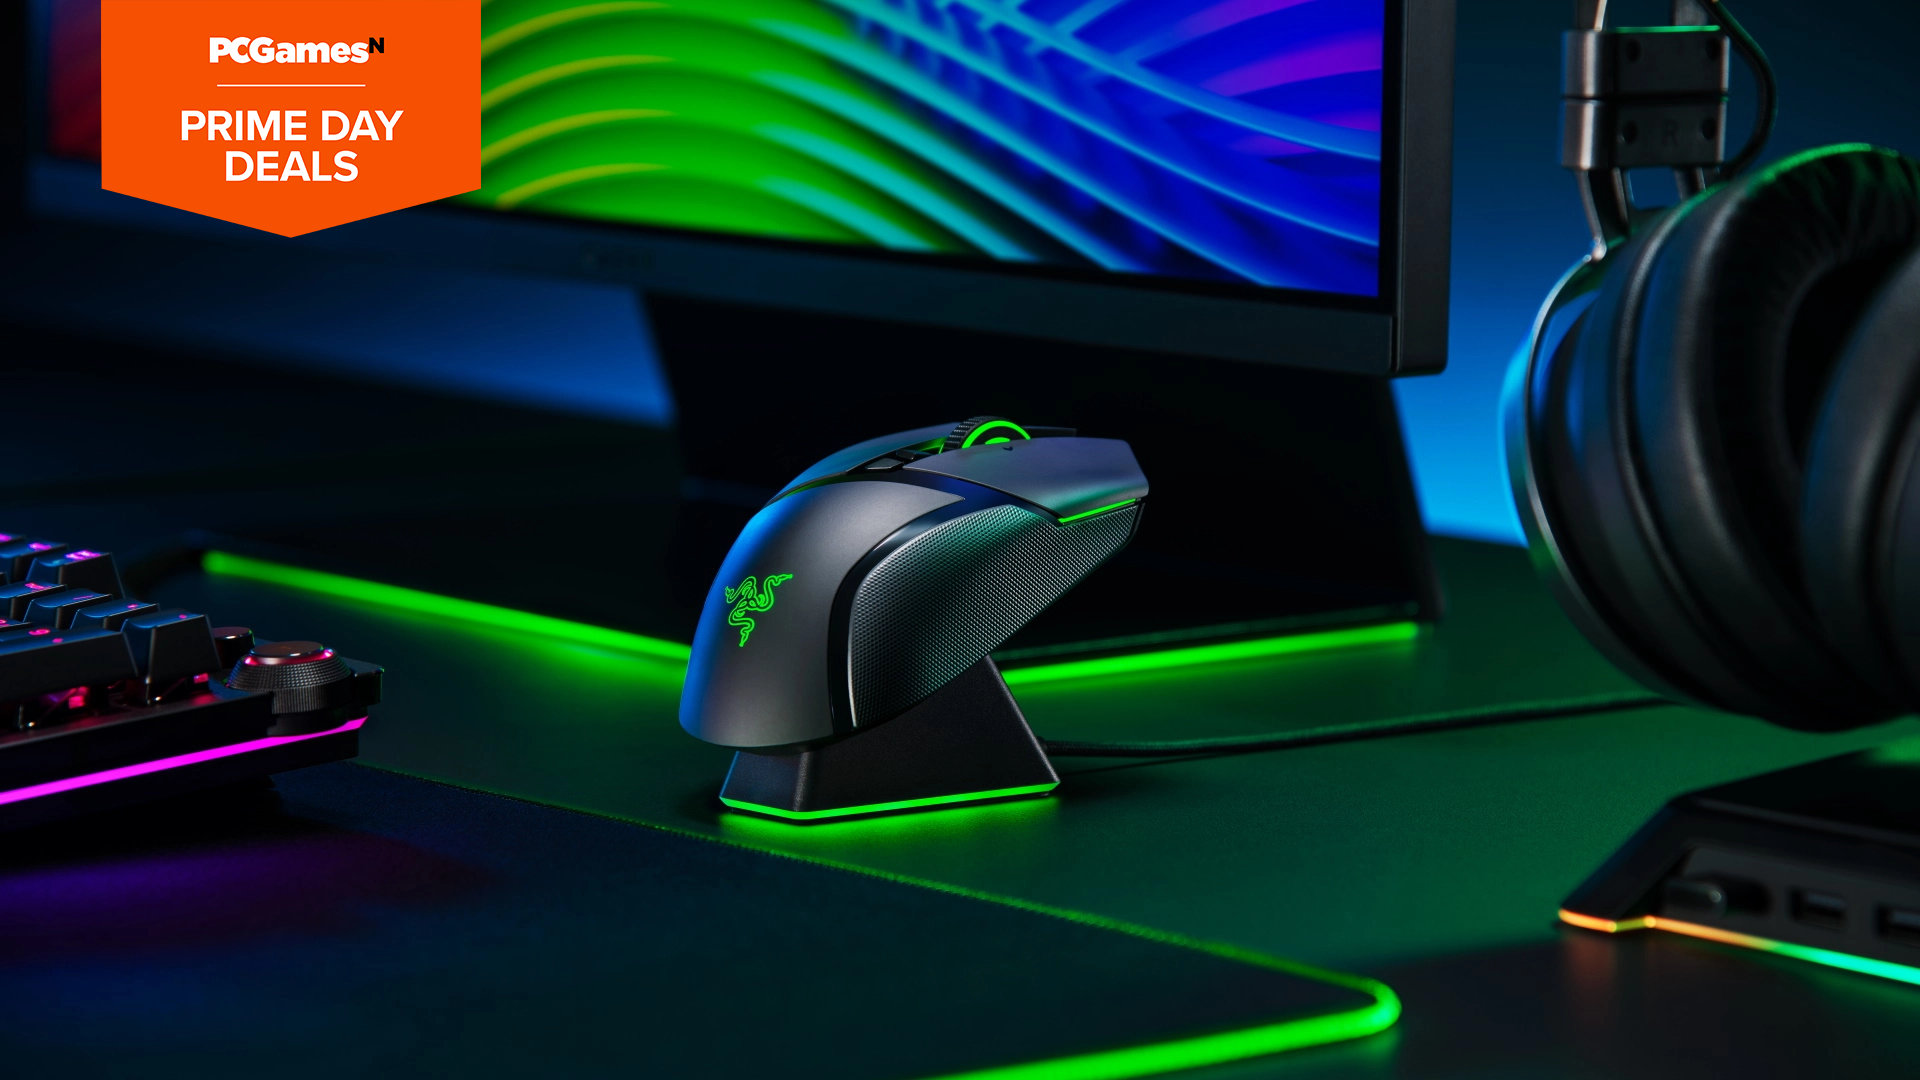 Pick up an early Amazon Prime Day deal on a gaming mouse